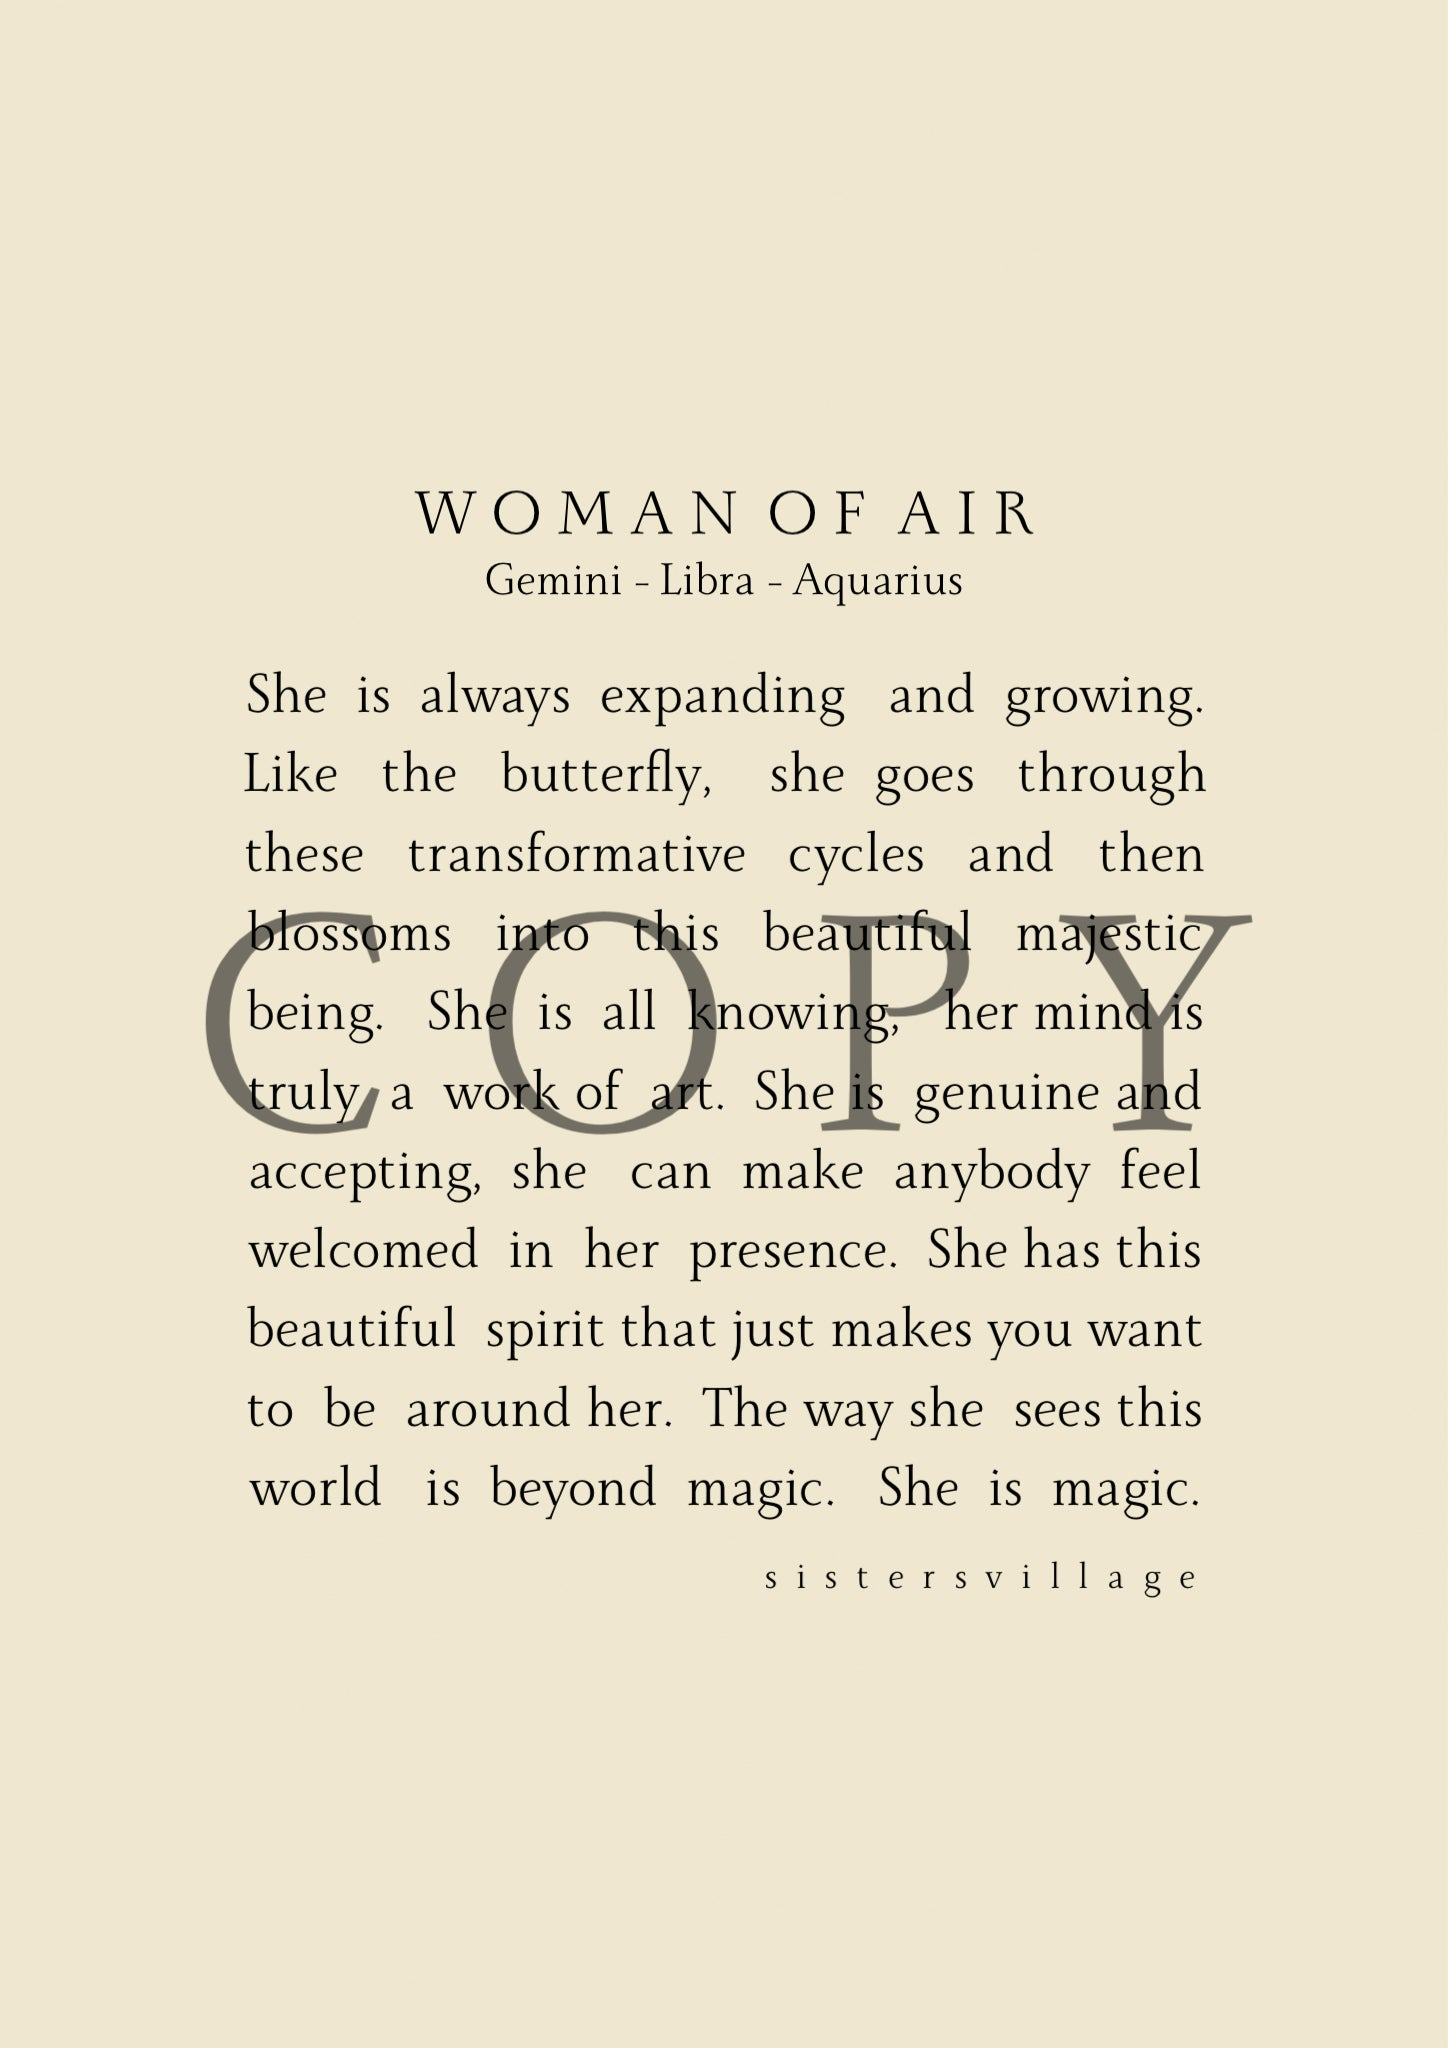 WOMAN OF AIR